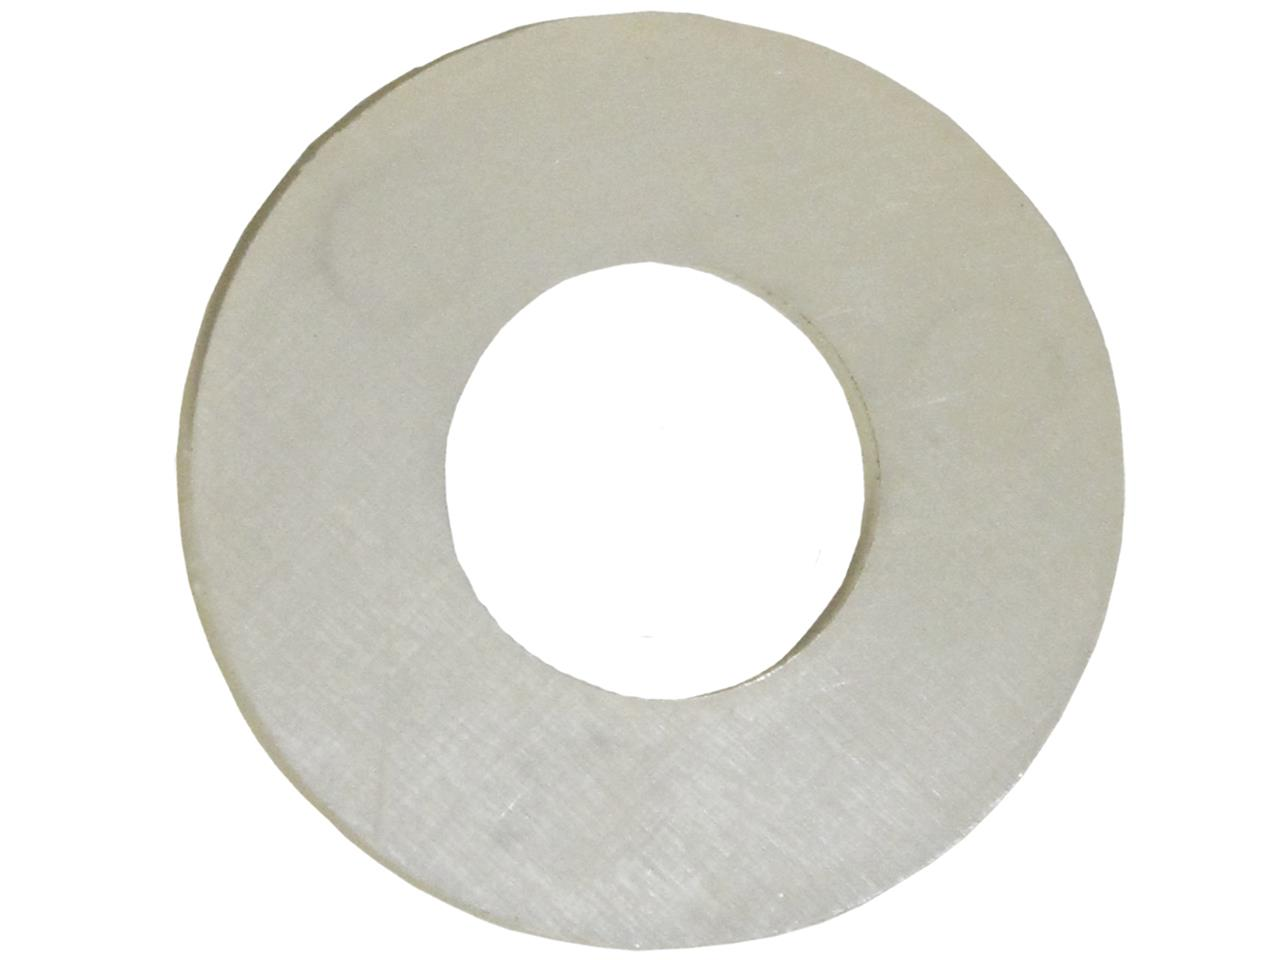 Picture of Aero G2 Cover Fastener Washer